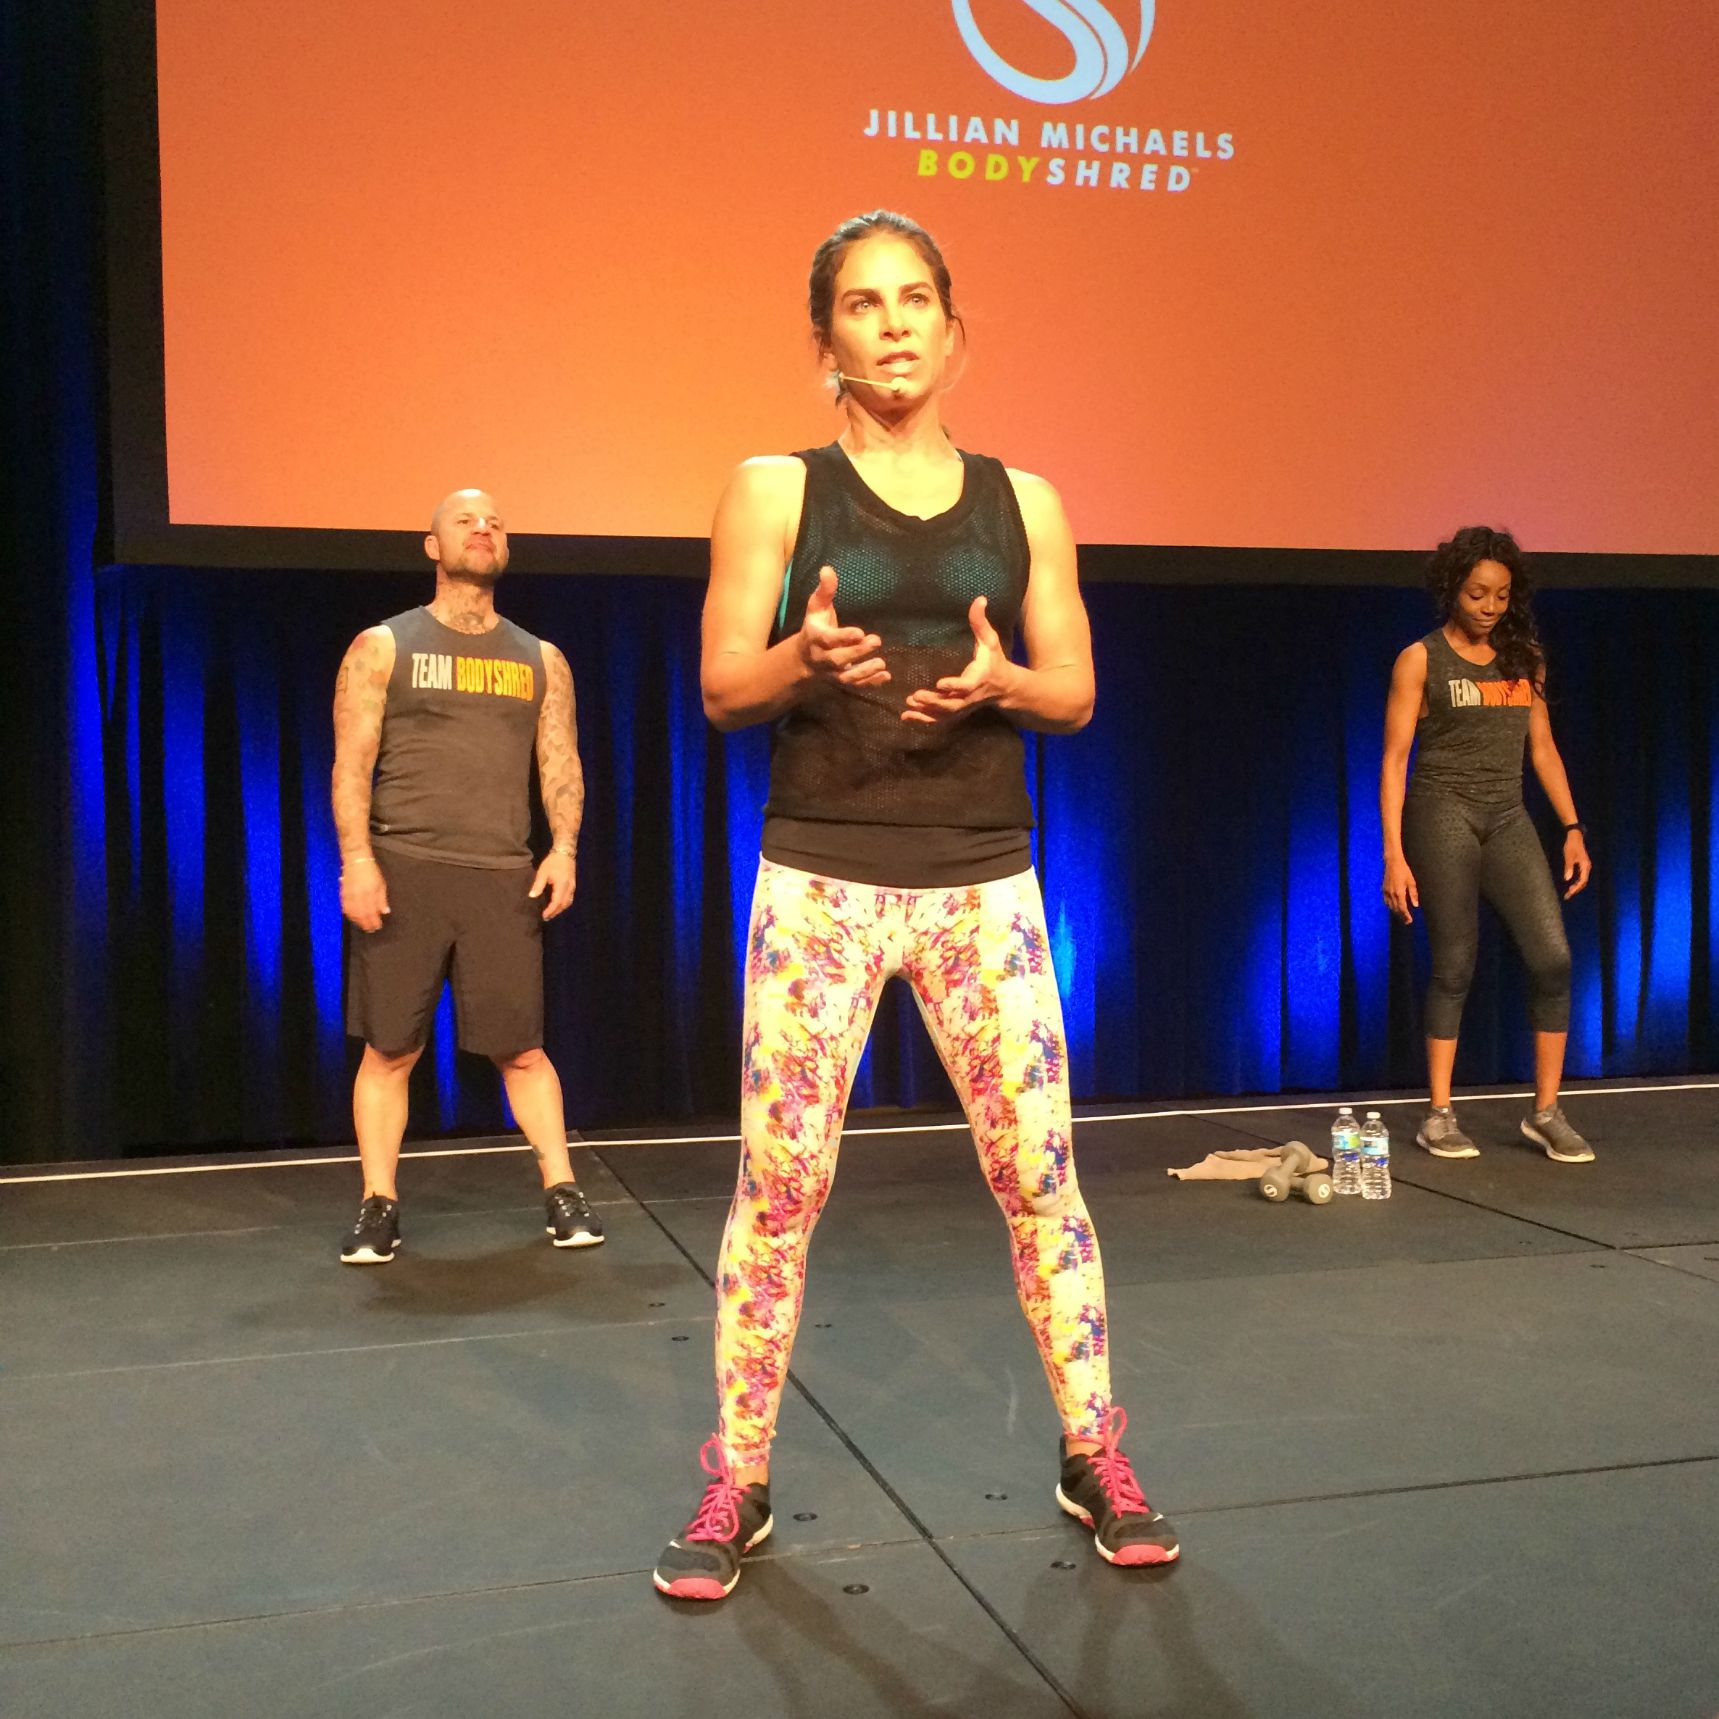 Jillian Michaels BodyShred at IDEA